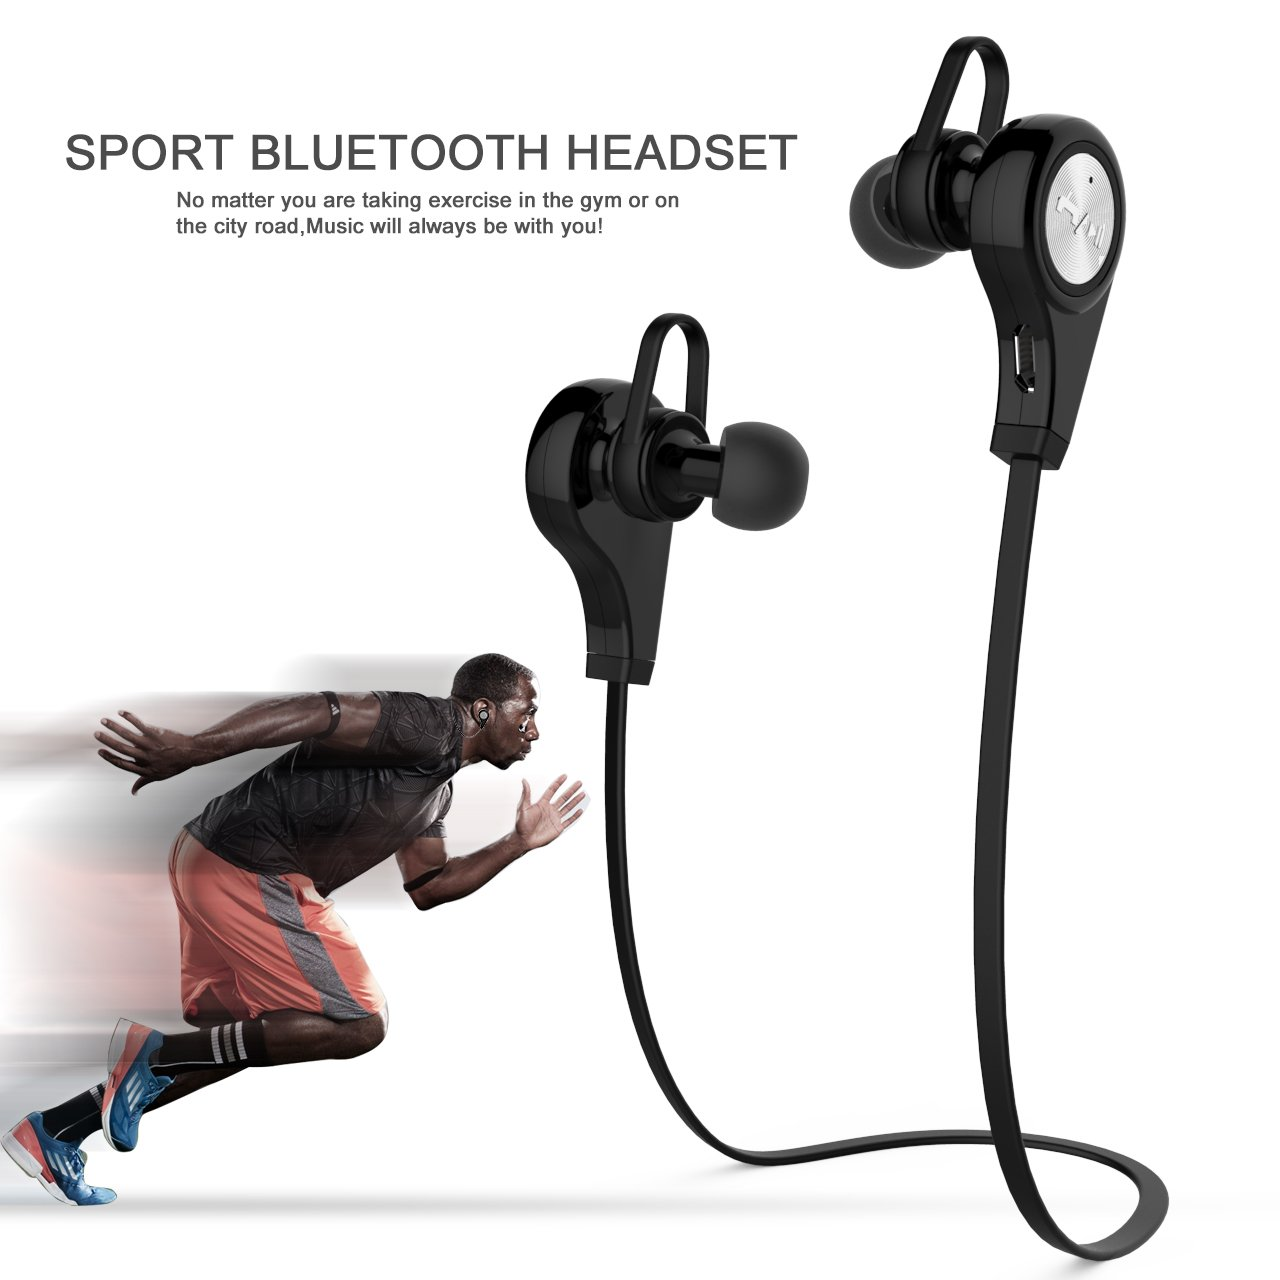 BEIYOU Best Wireless Headphones,Bluetooth Headphones,Sports Earphones,IPX4 Waterproof Stereo Wireless Bluetooth Earbuds for Gym Running,8H Playtime,150H StandbyTime,Noise Cancelling Earbuds (Black)